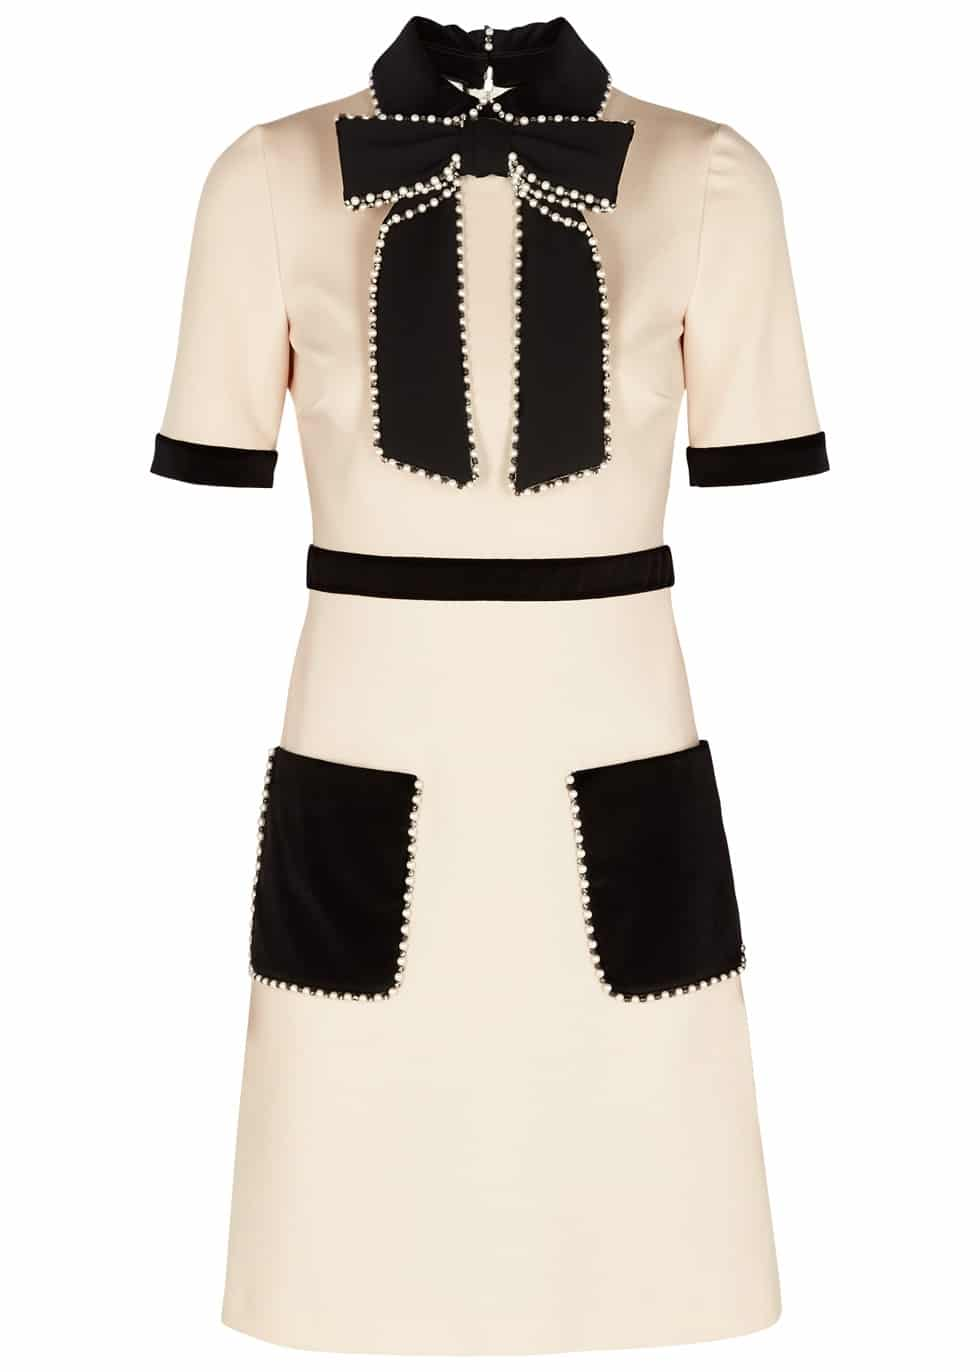 GUCCI Ecru Embellished Stretch Knit Beige Dress